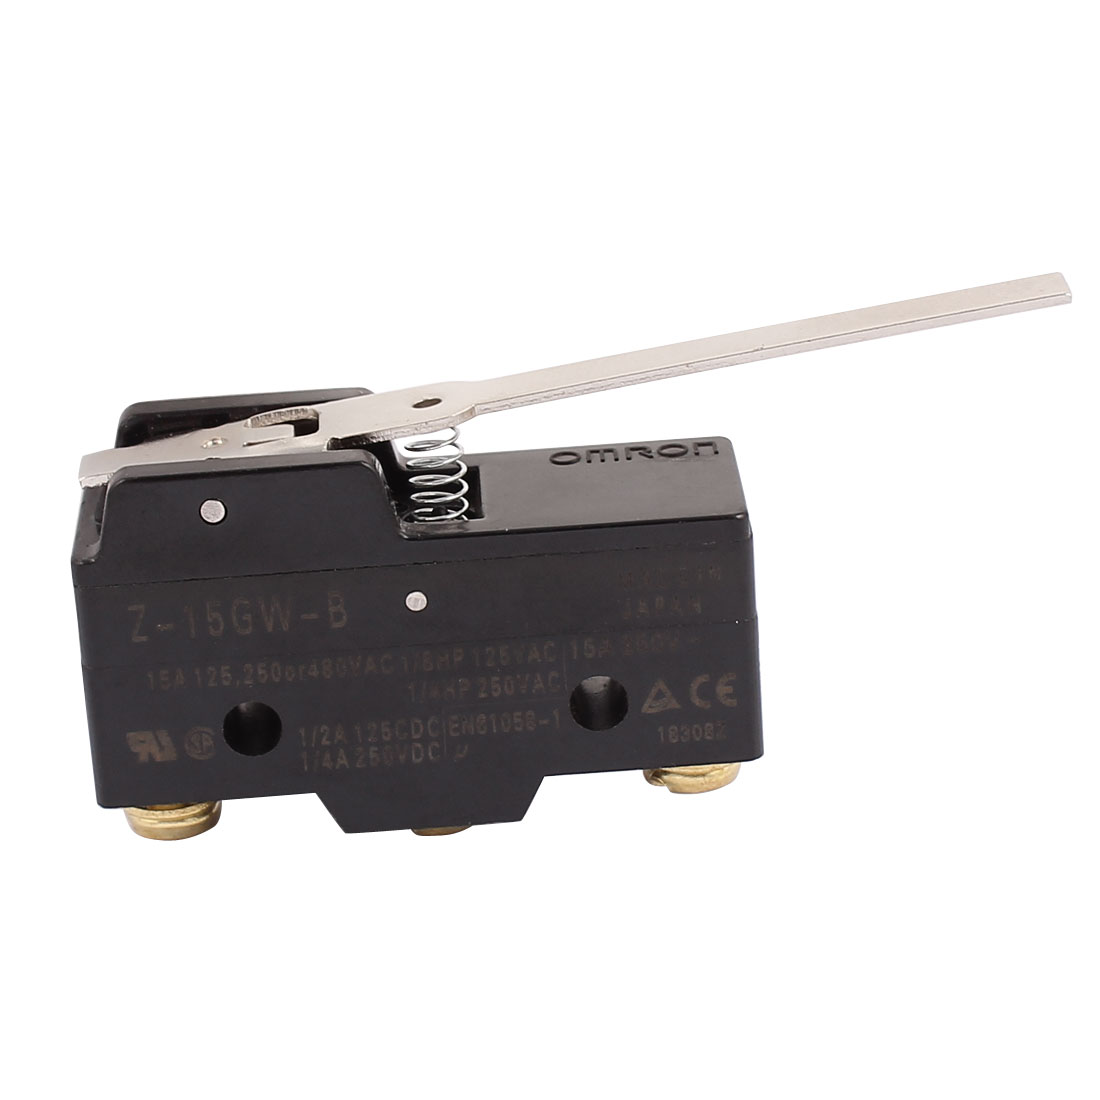 Long Hinge Lever Momentary Action Micro Switch 15A/250VAC 1NO 1NC